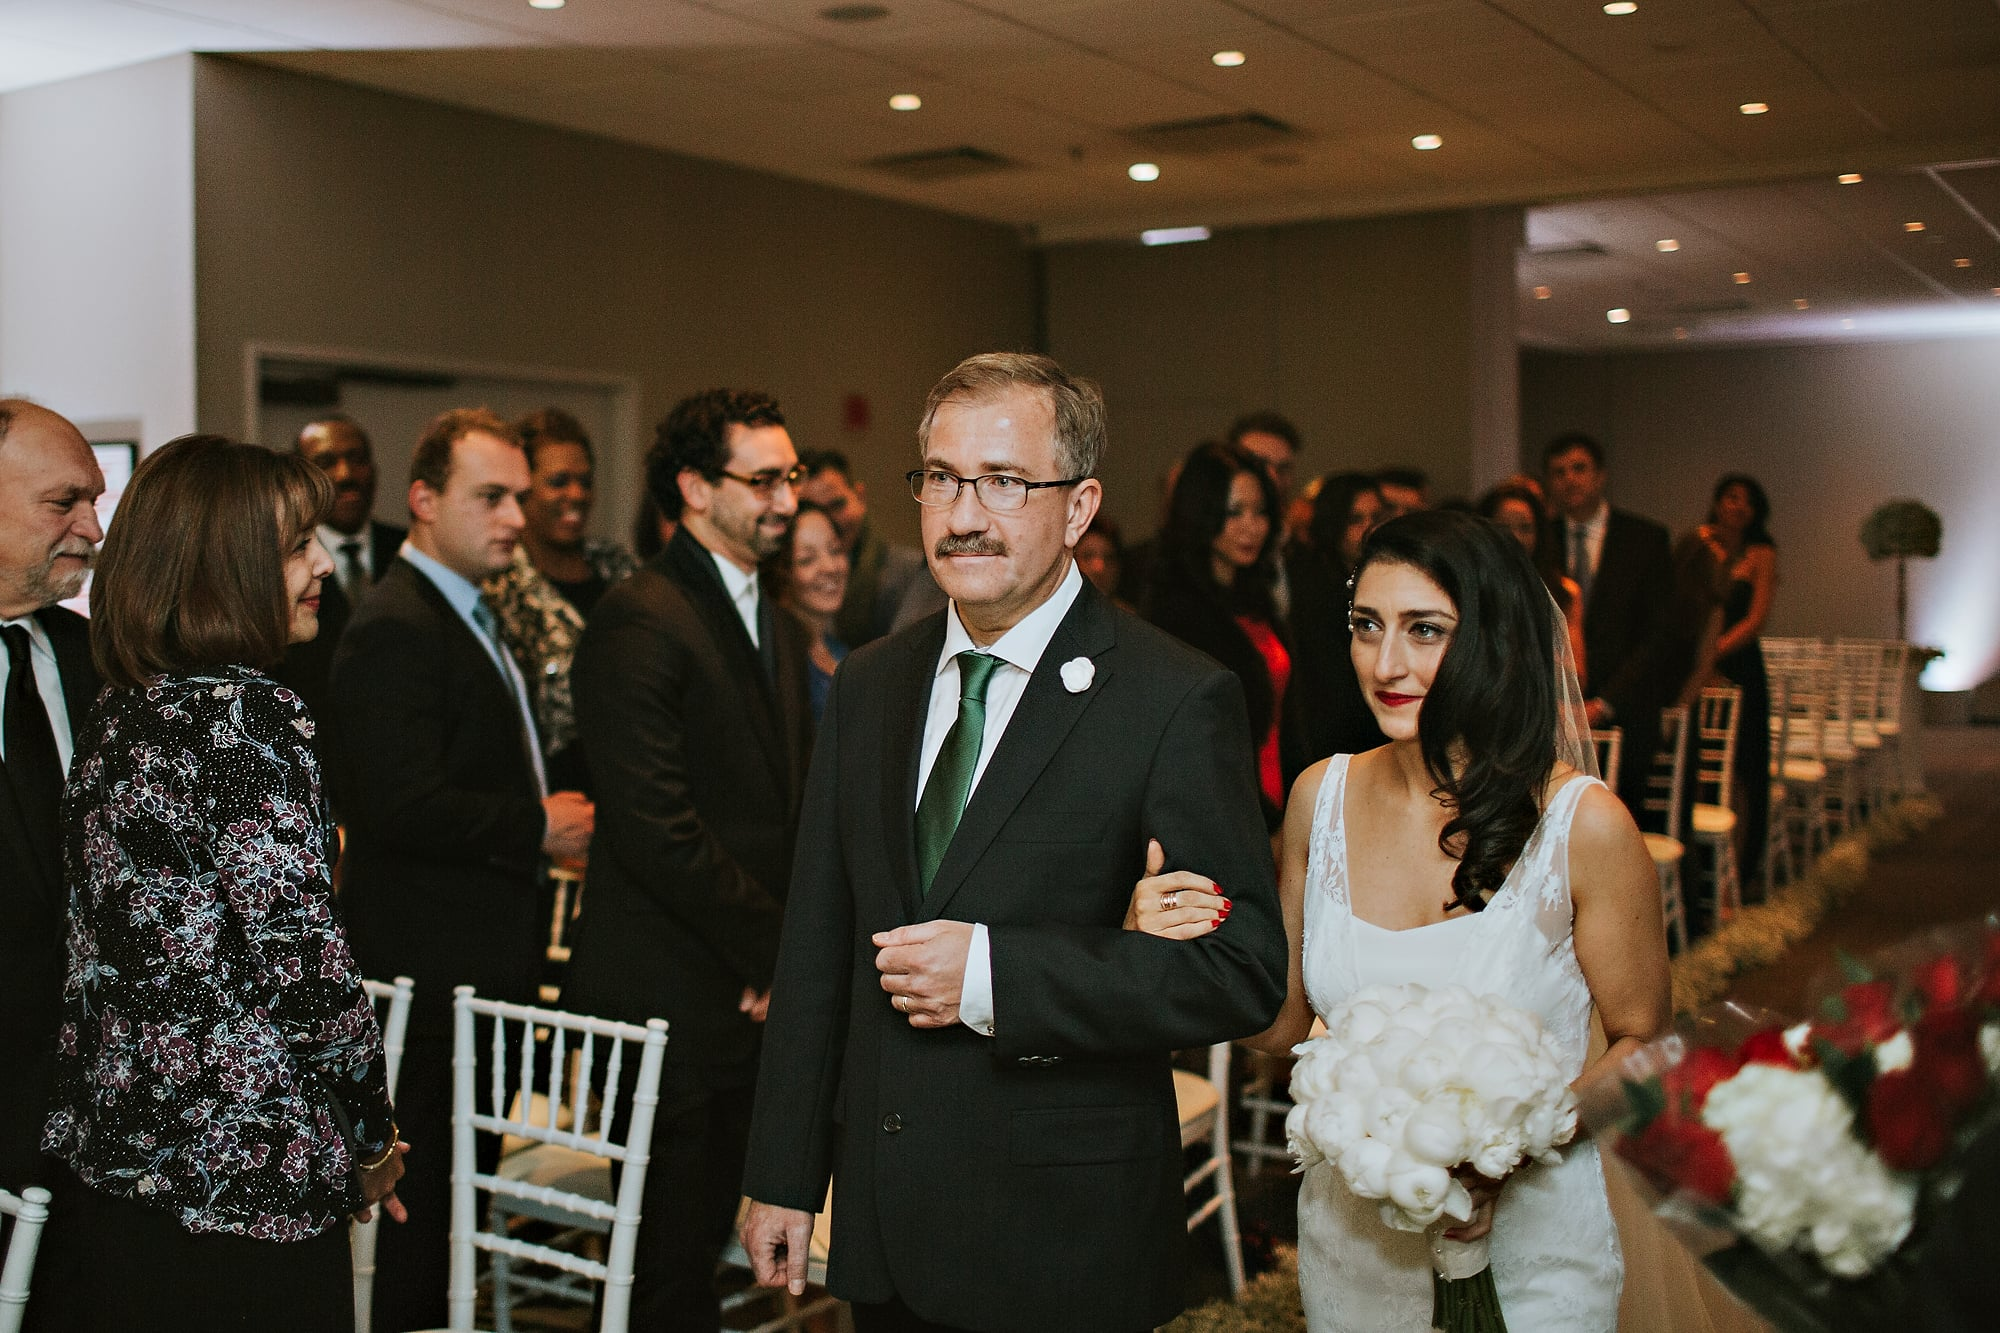 rachel gulotta photography Chicago Wedding-46.jpg